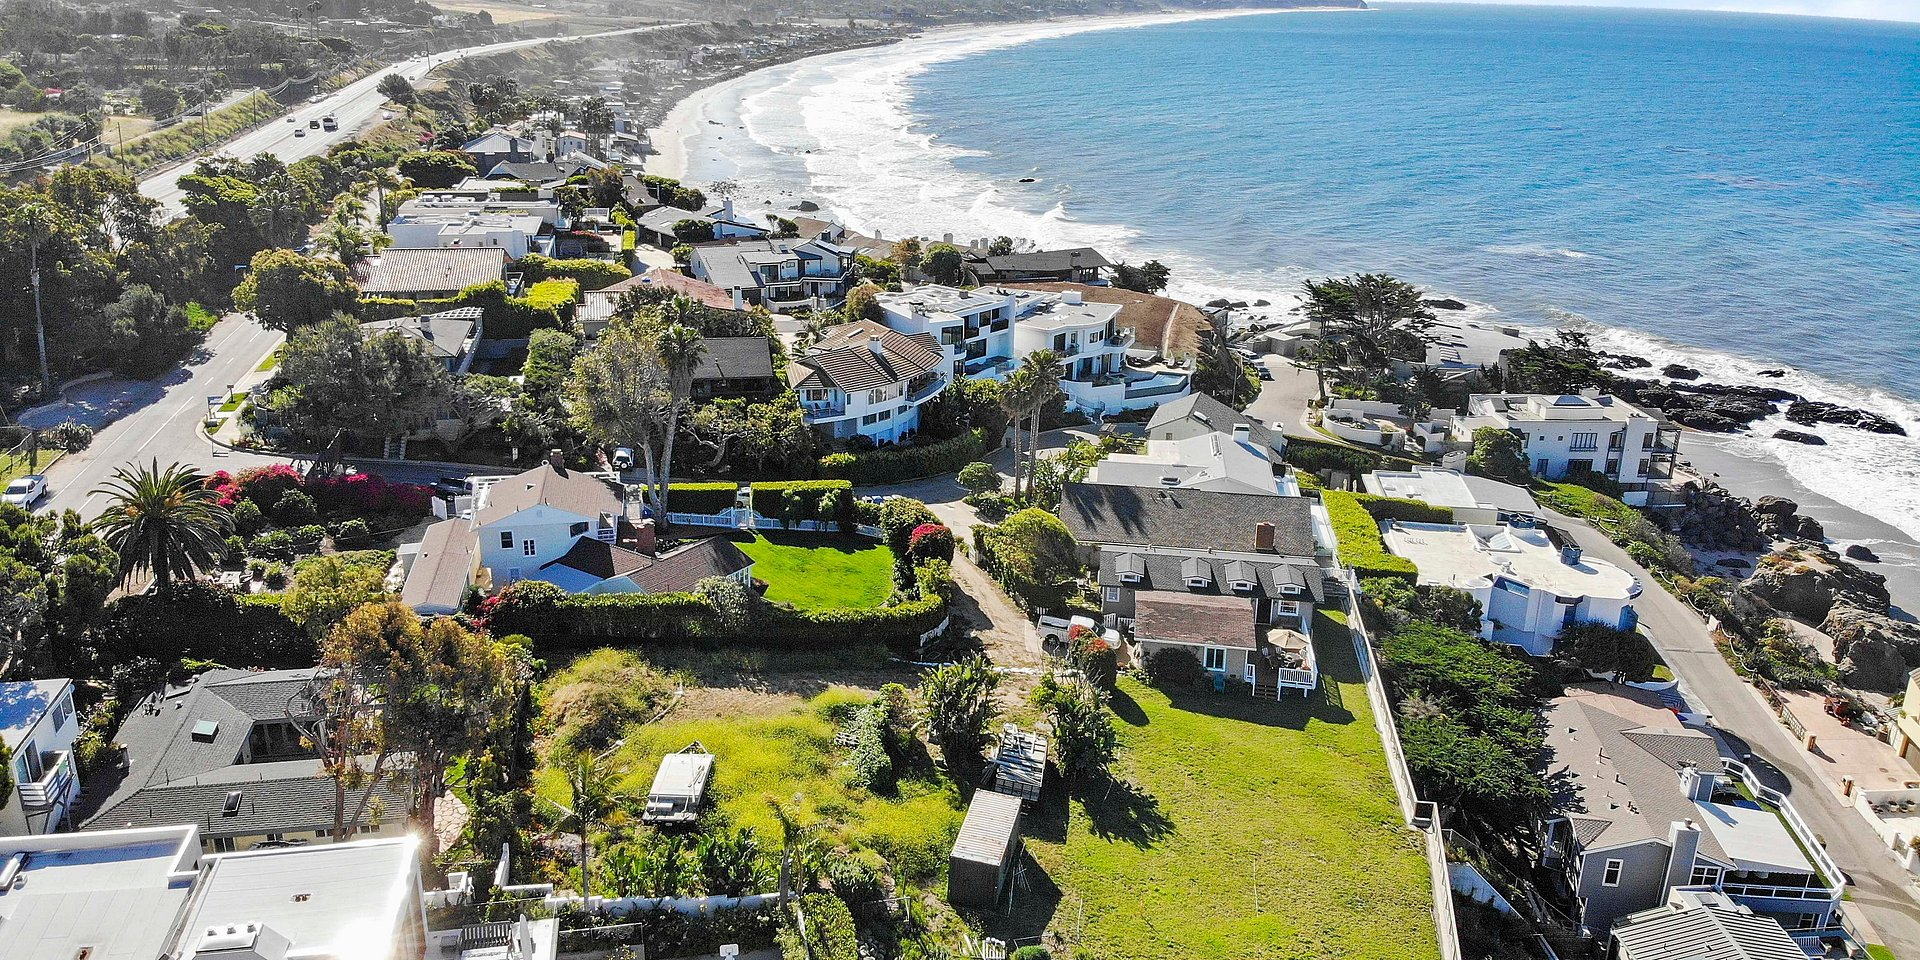 Coldwell Banker Residential Brokerage Lists Malibu Property for $12 Million